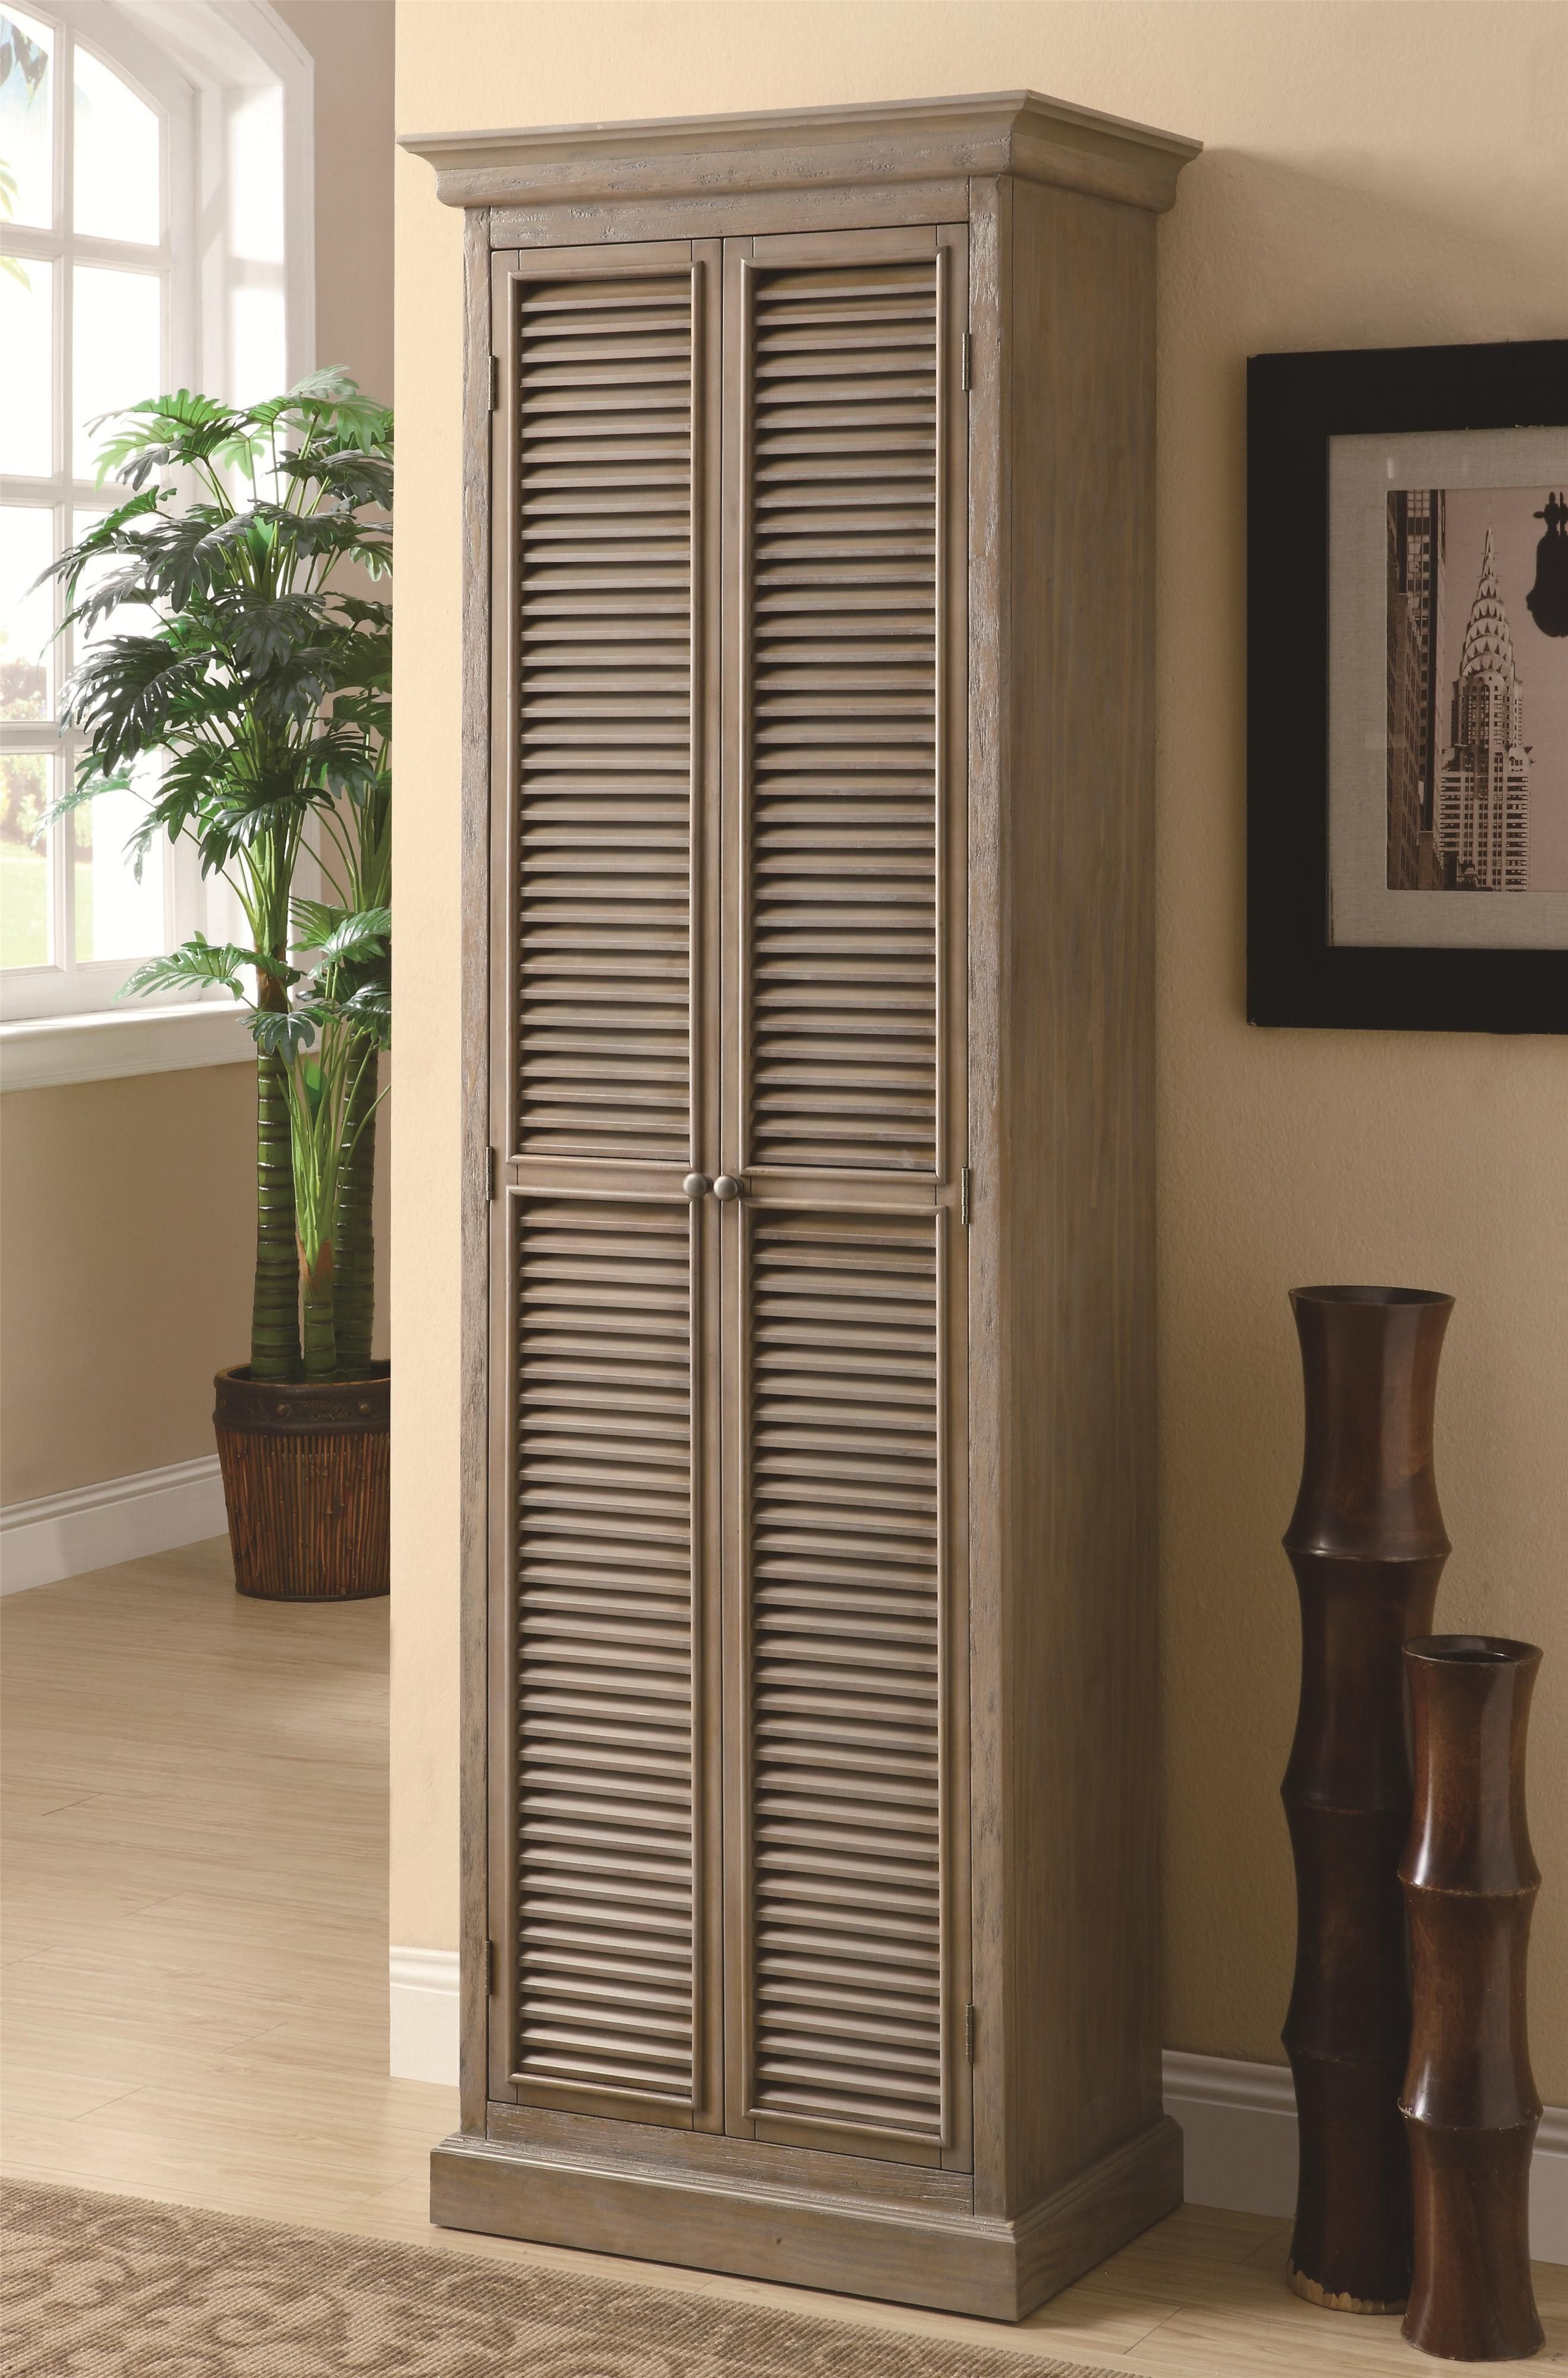 Small Cabinet with Doors Beautiful Tall Narrow Storage Cabinets with Doors